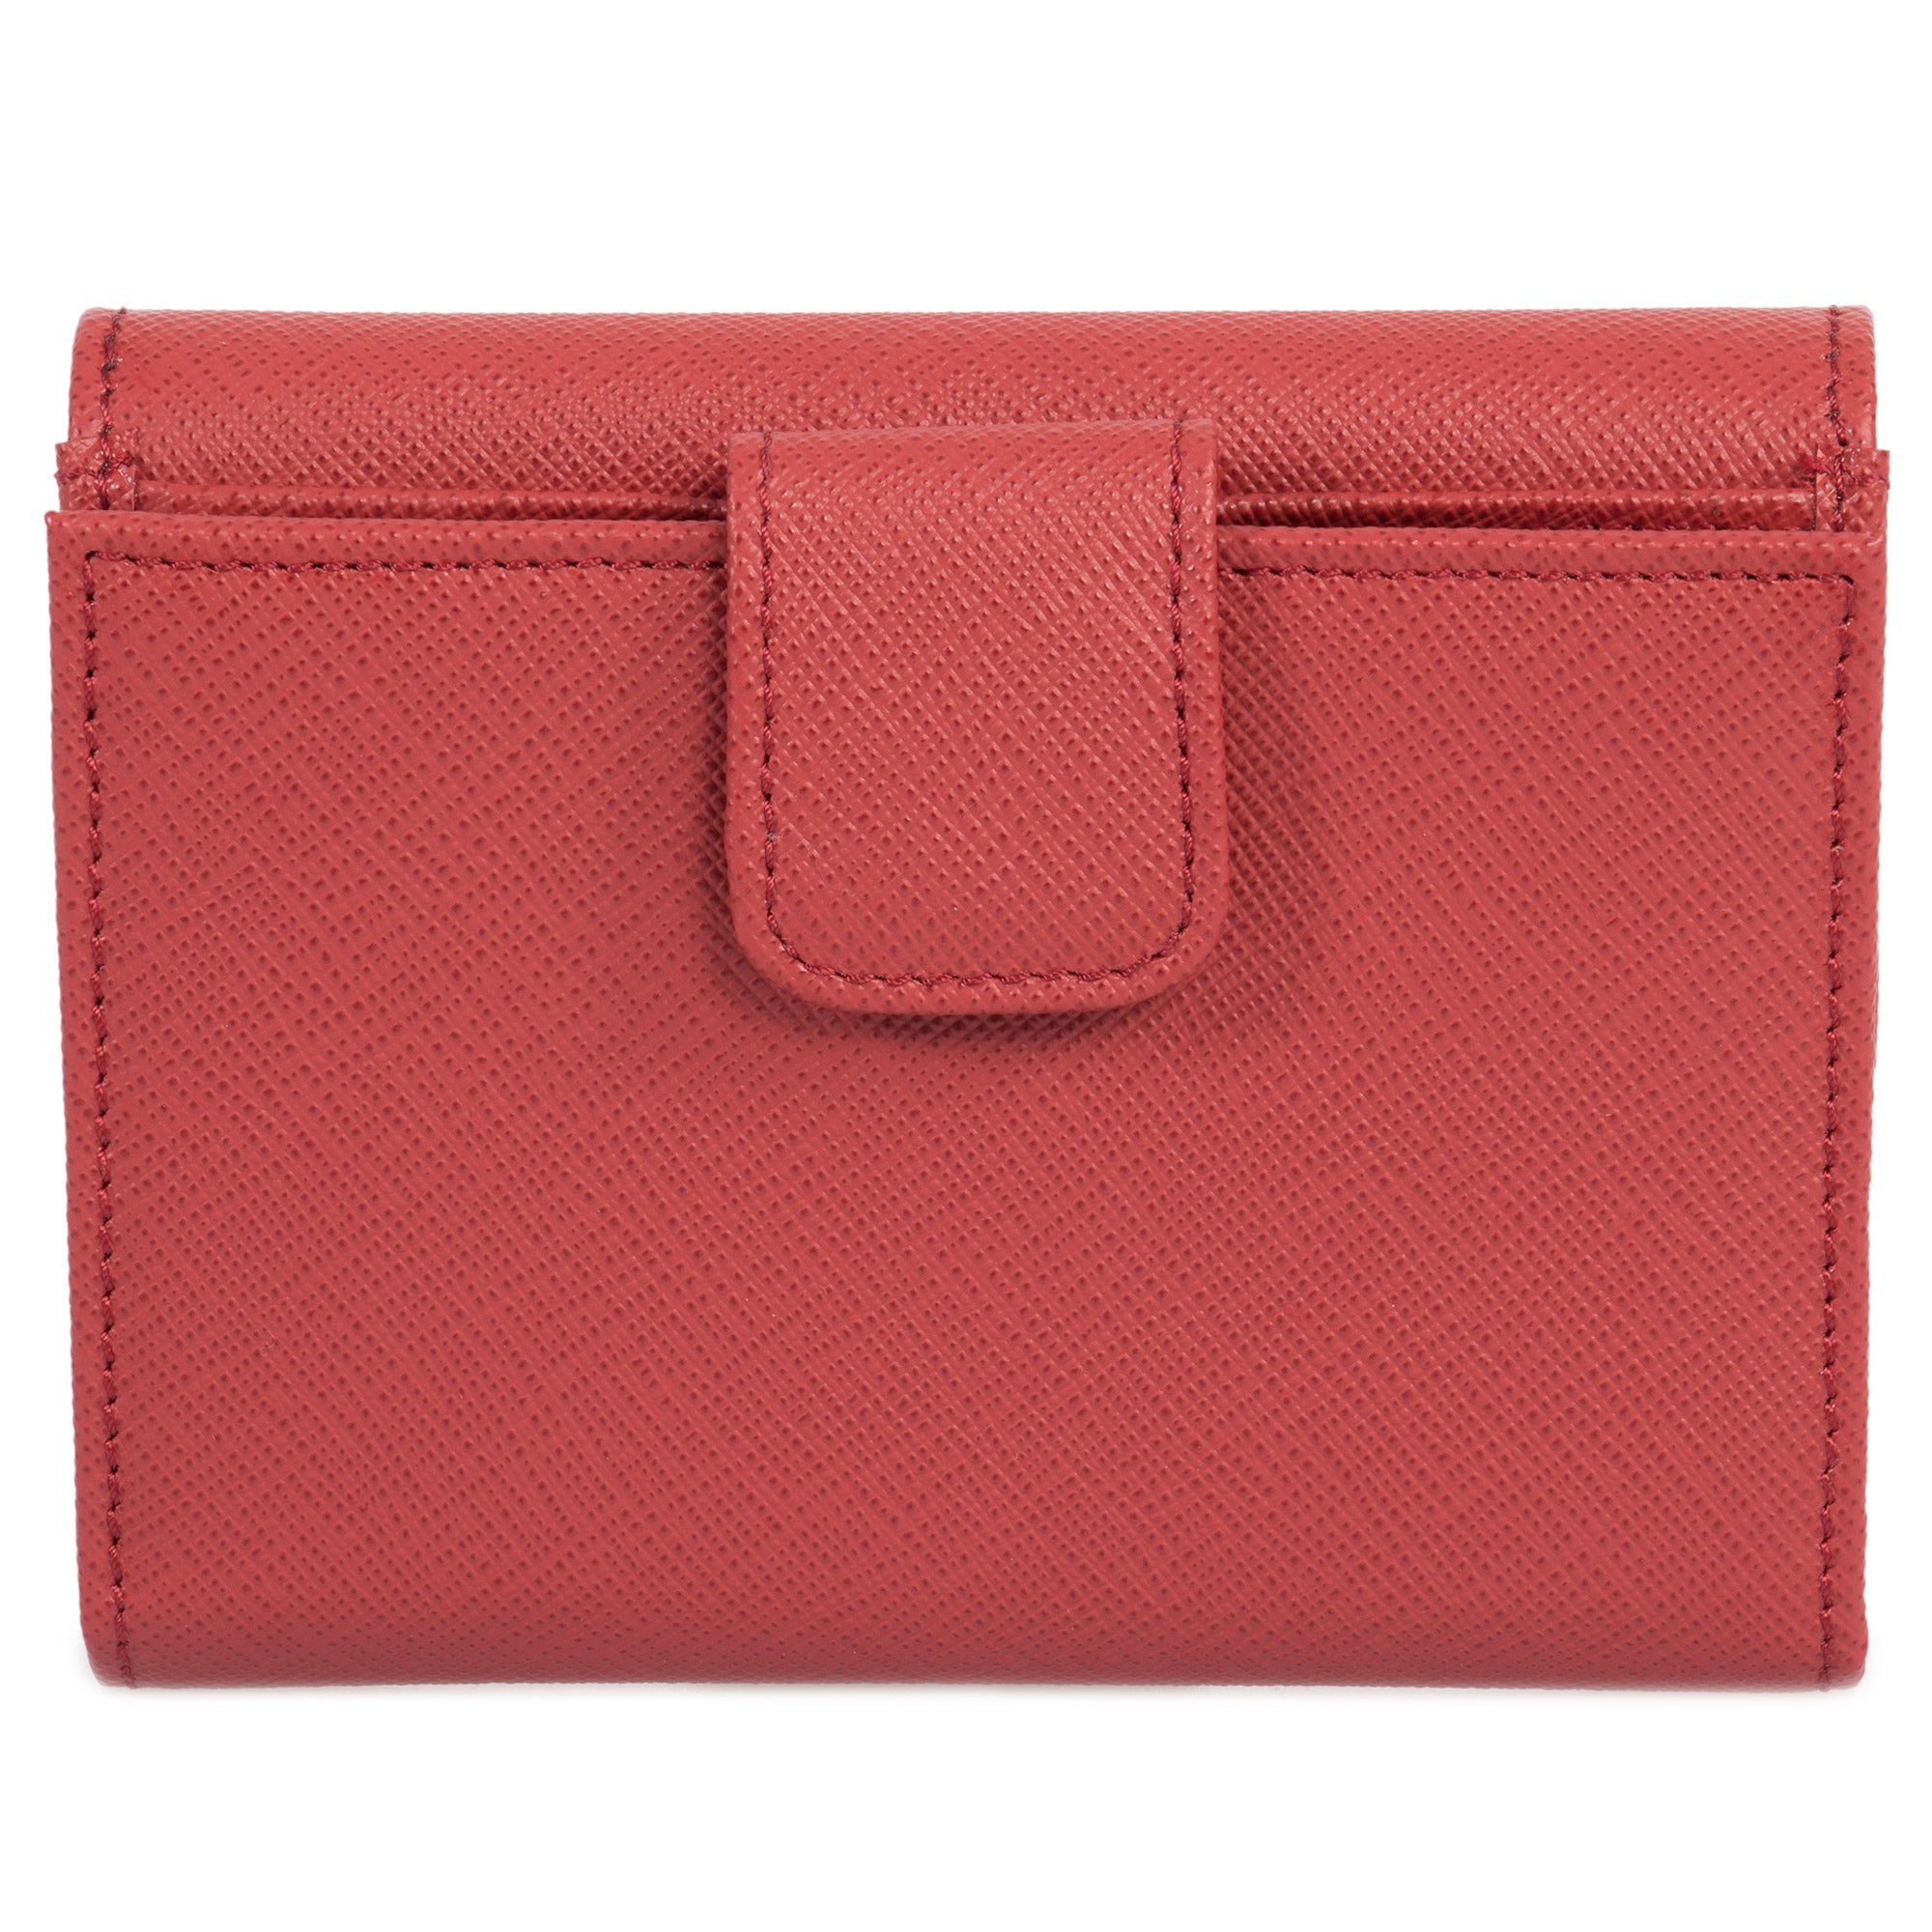 Prada Red Saffiano Leather Flap Wallet 1MH523 QWA F068Z